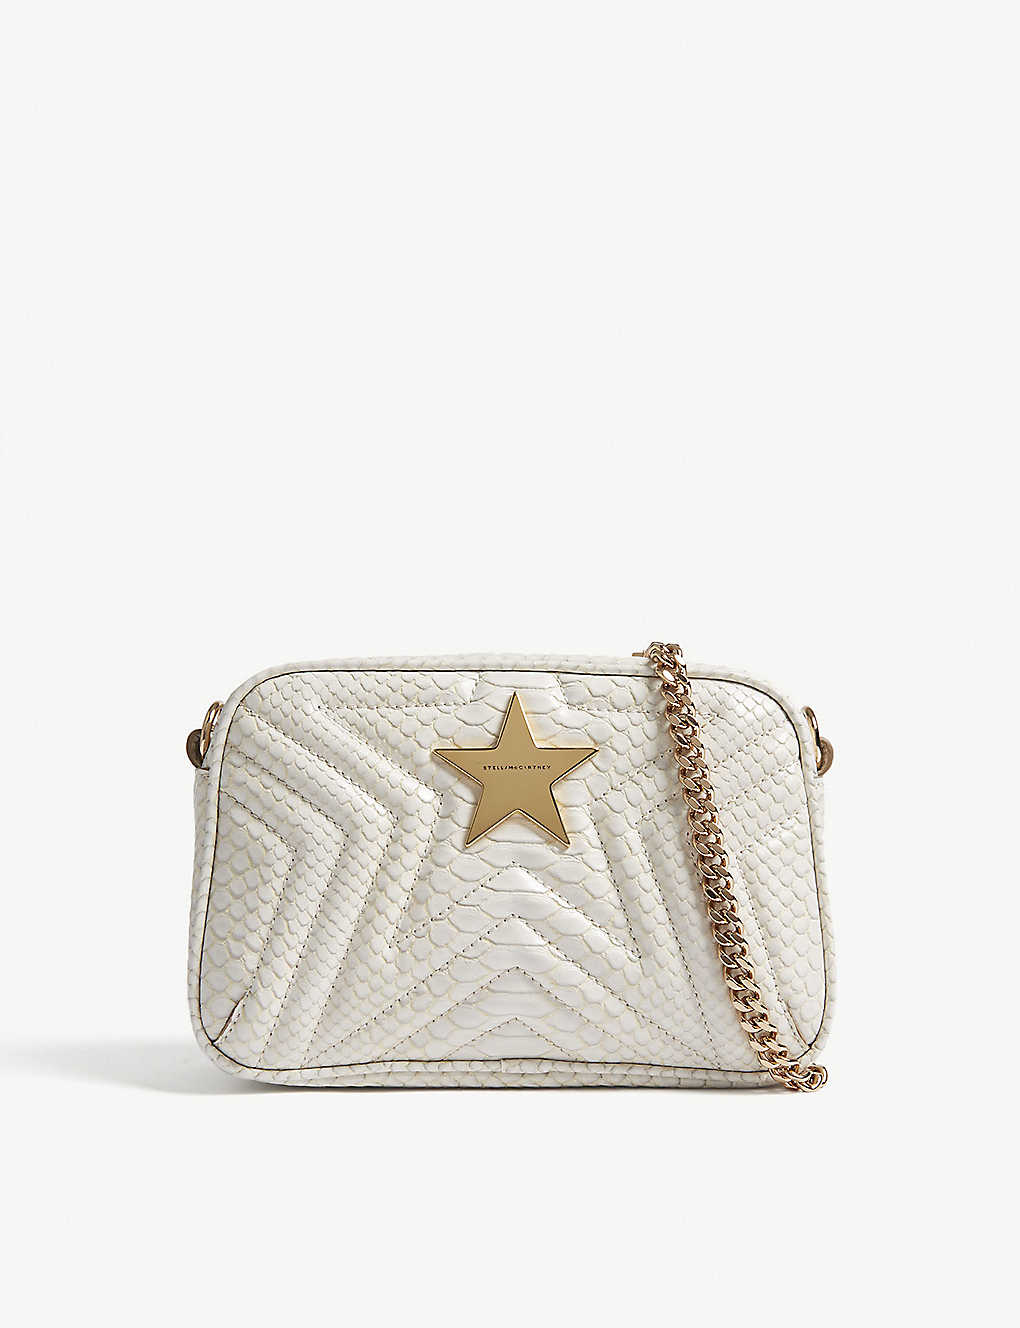 STELLA MCCARTNEY - Small quilted star camera bag  8d9a00b5052cd